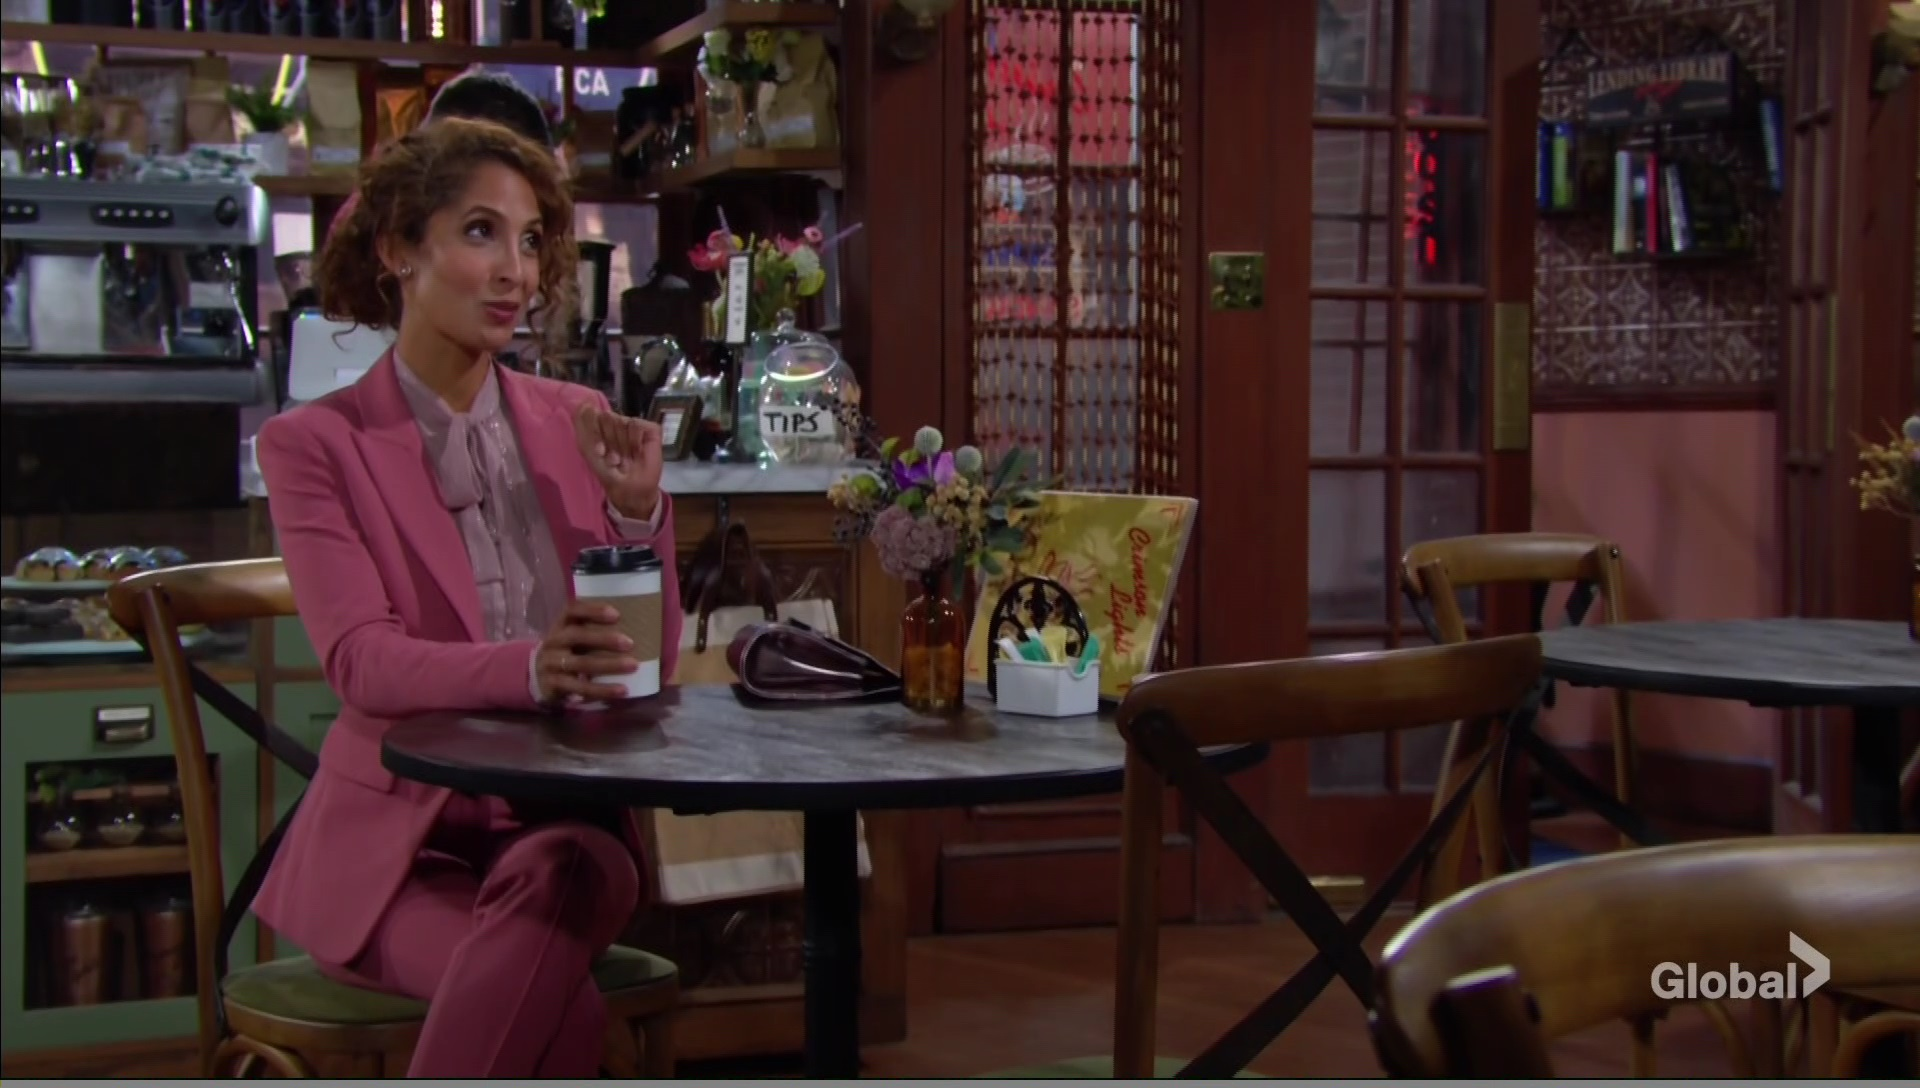 lily gossip to devon young and restless